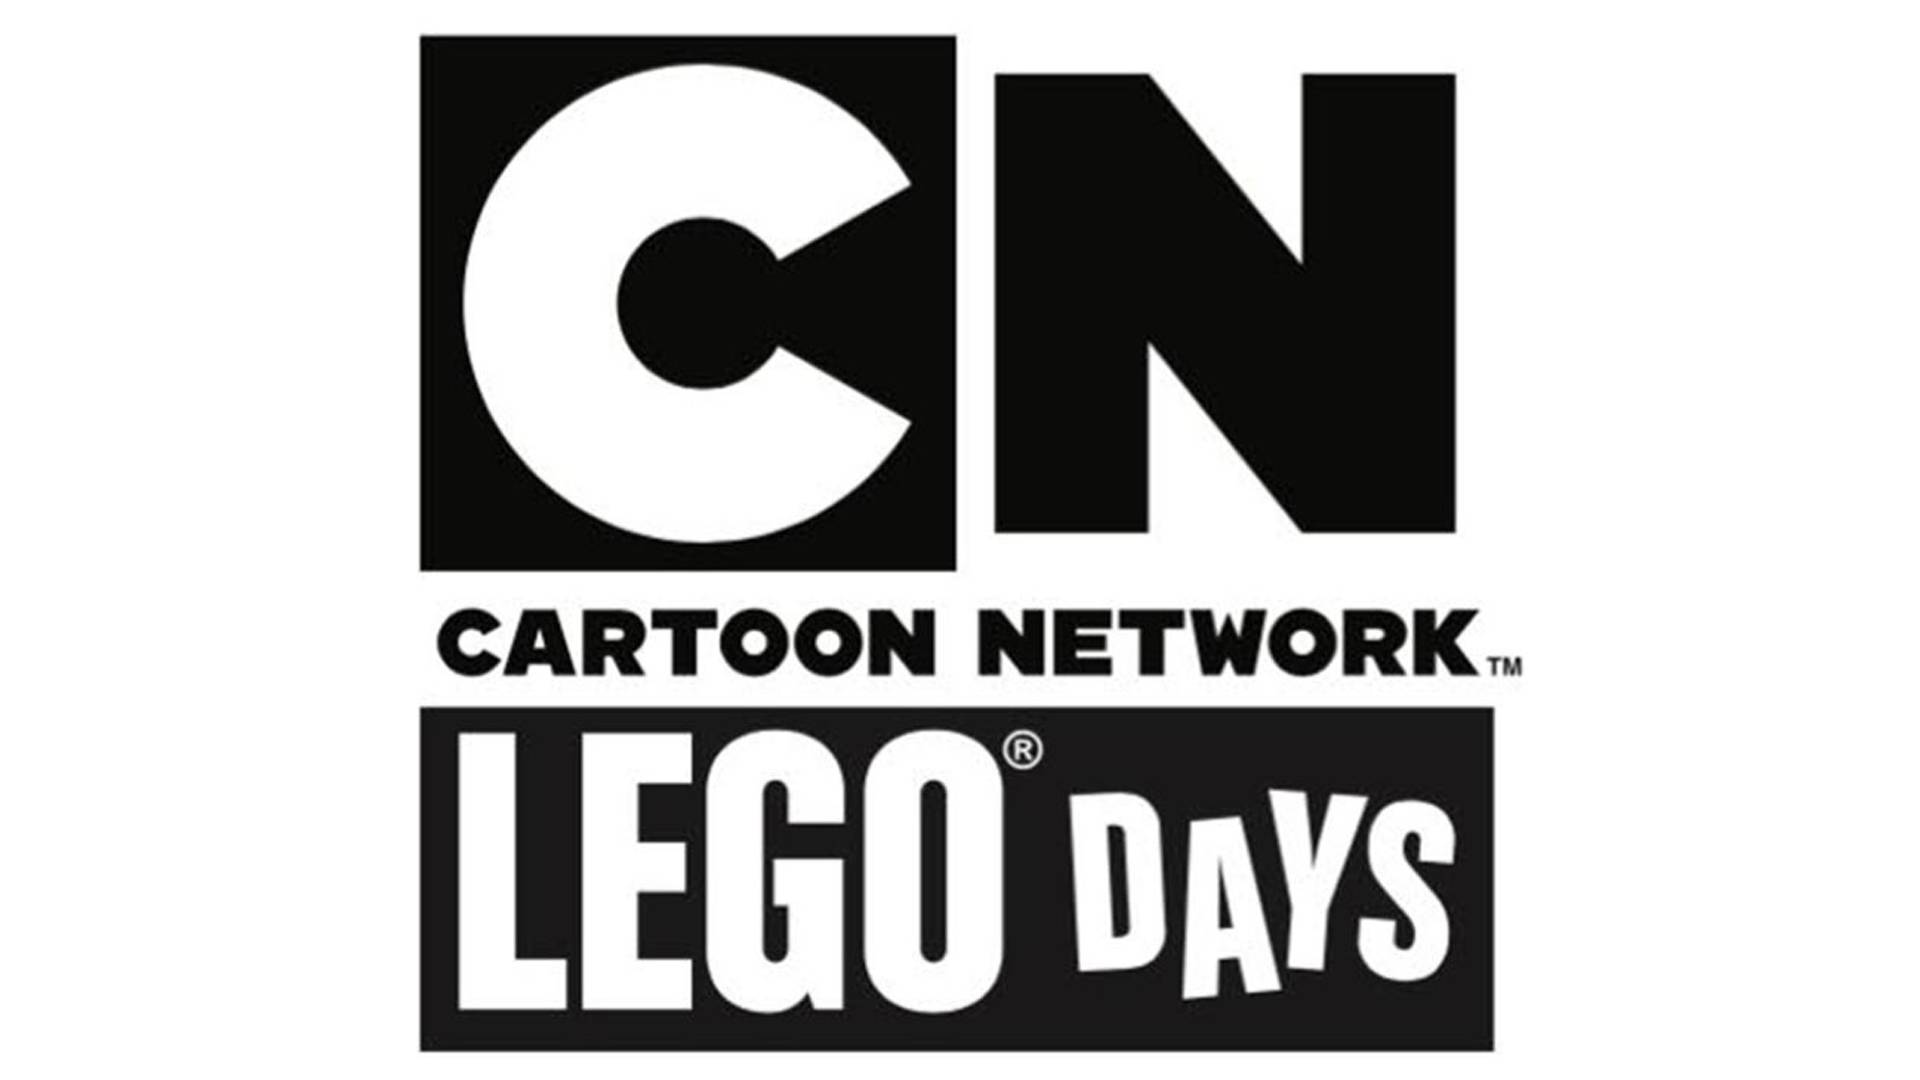 Cartoon Network Lego Days